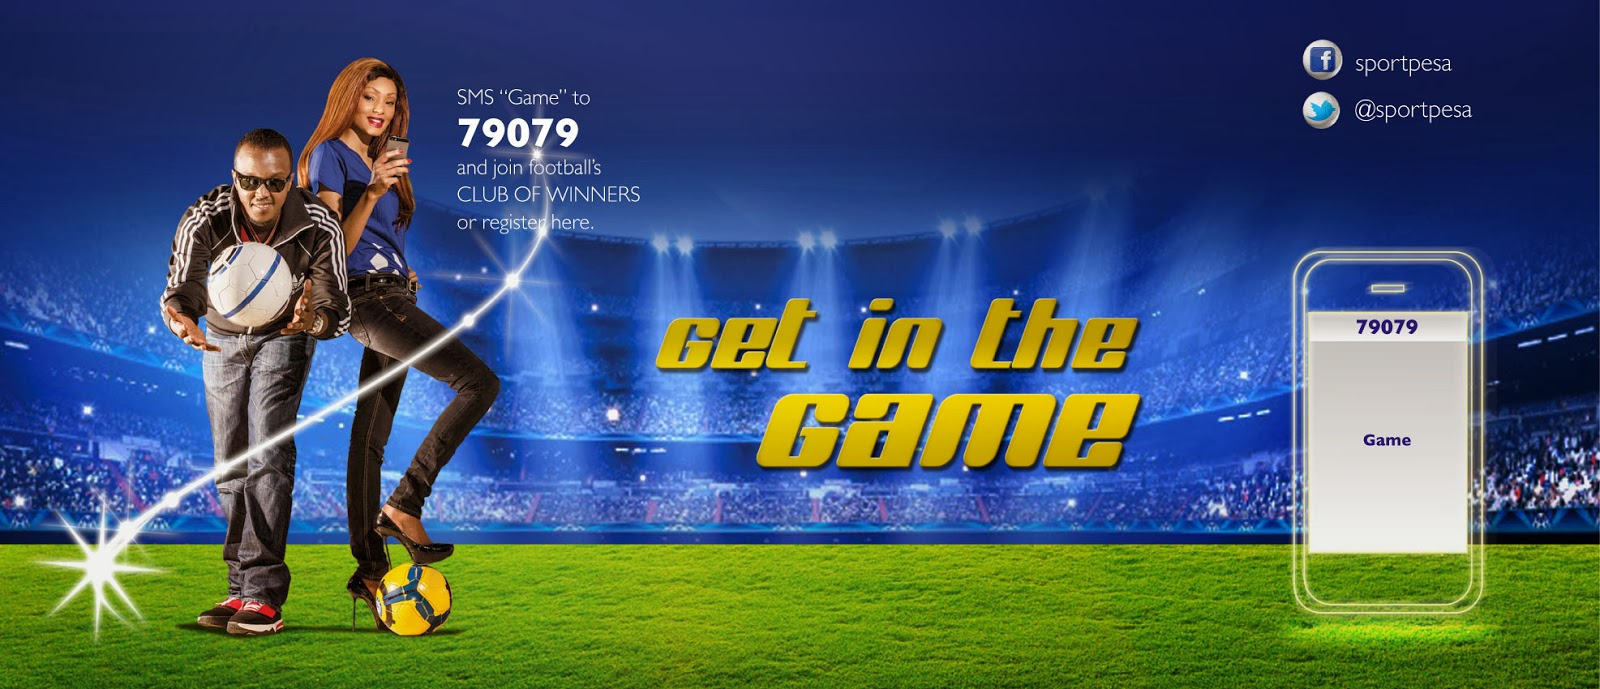 sportpesa login today games online free